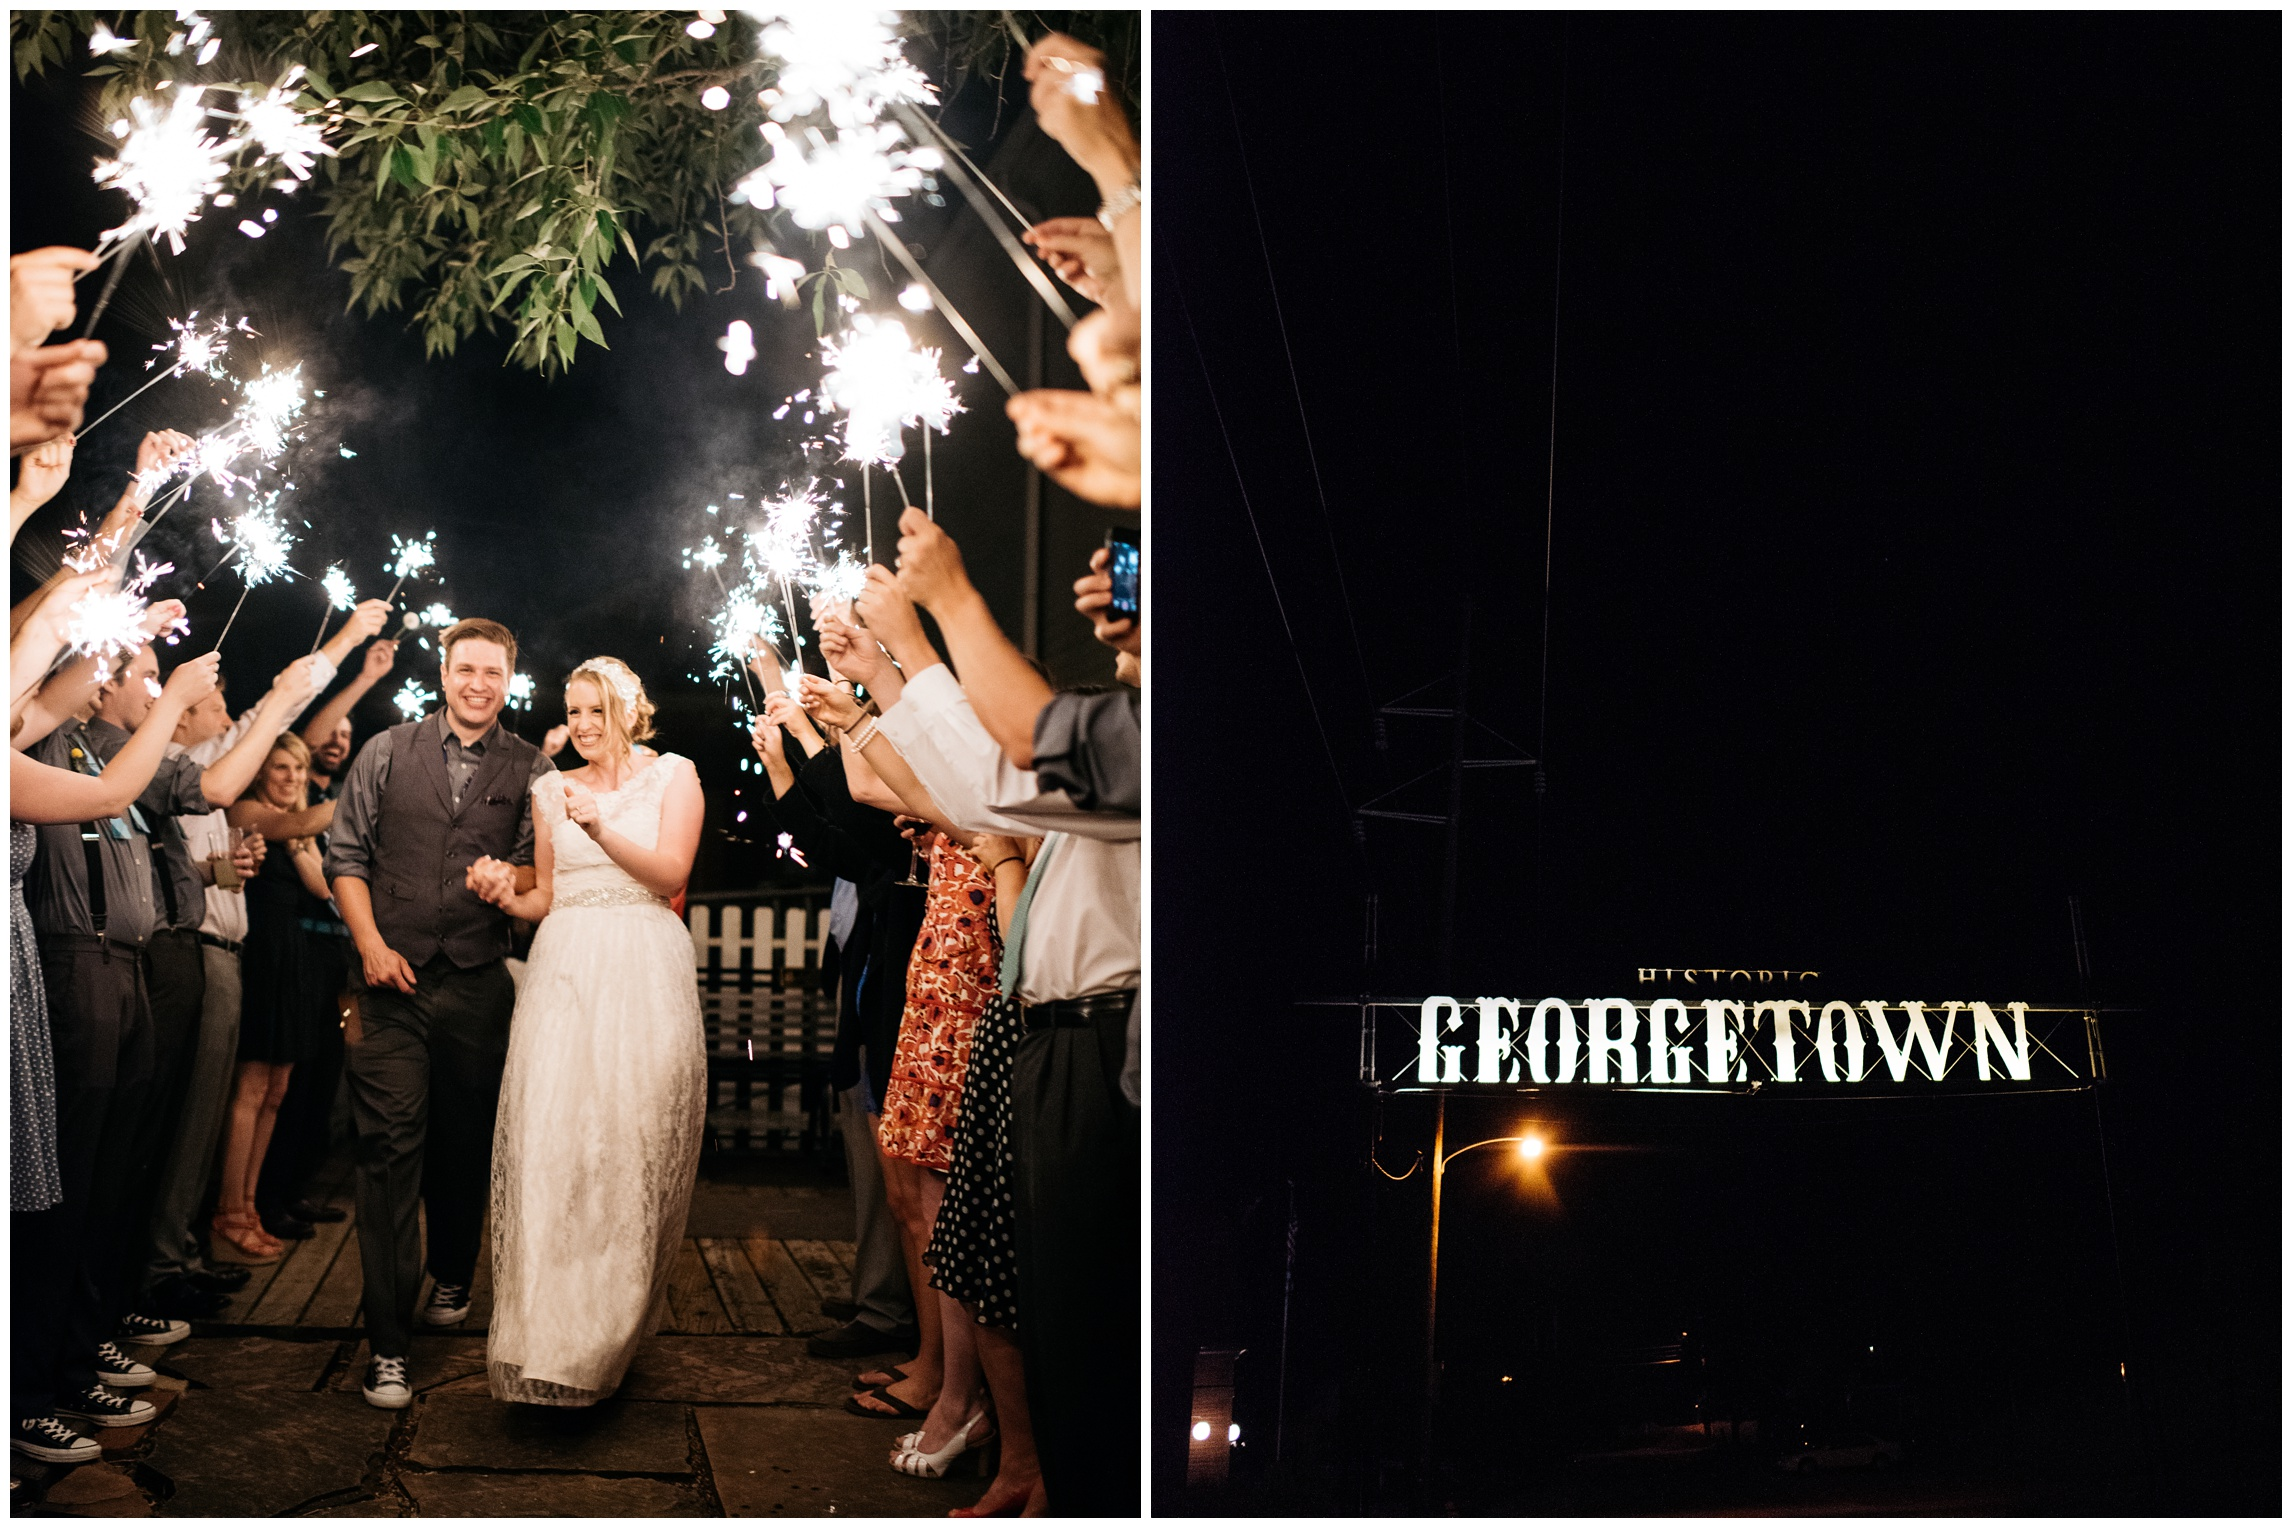 A bride and groom leave their wedding through a tunnel of sparklers. Wedding photography by Sonja Salzburg of Sonja K Photography.